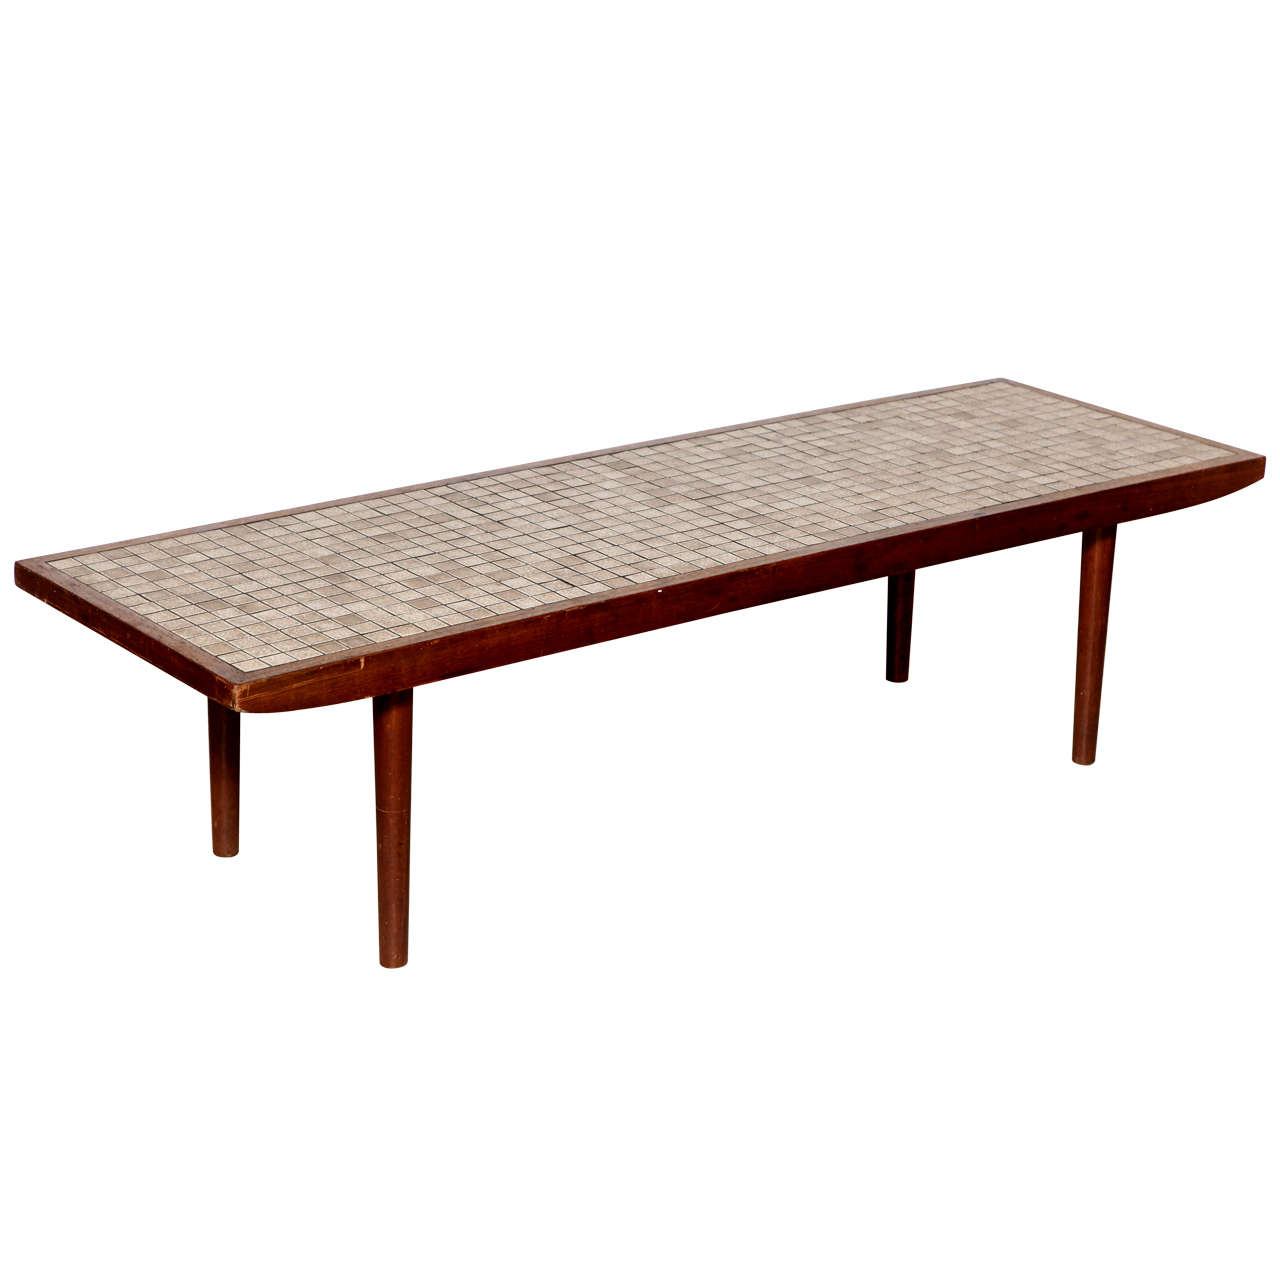 Jane and Gordon Martz Walnut and Neutral Ceramic Tile-Top Coffee Table, 1960s